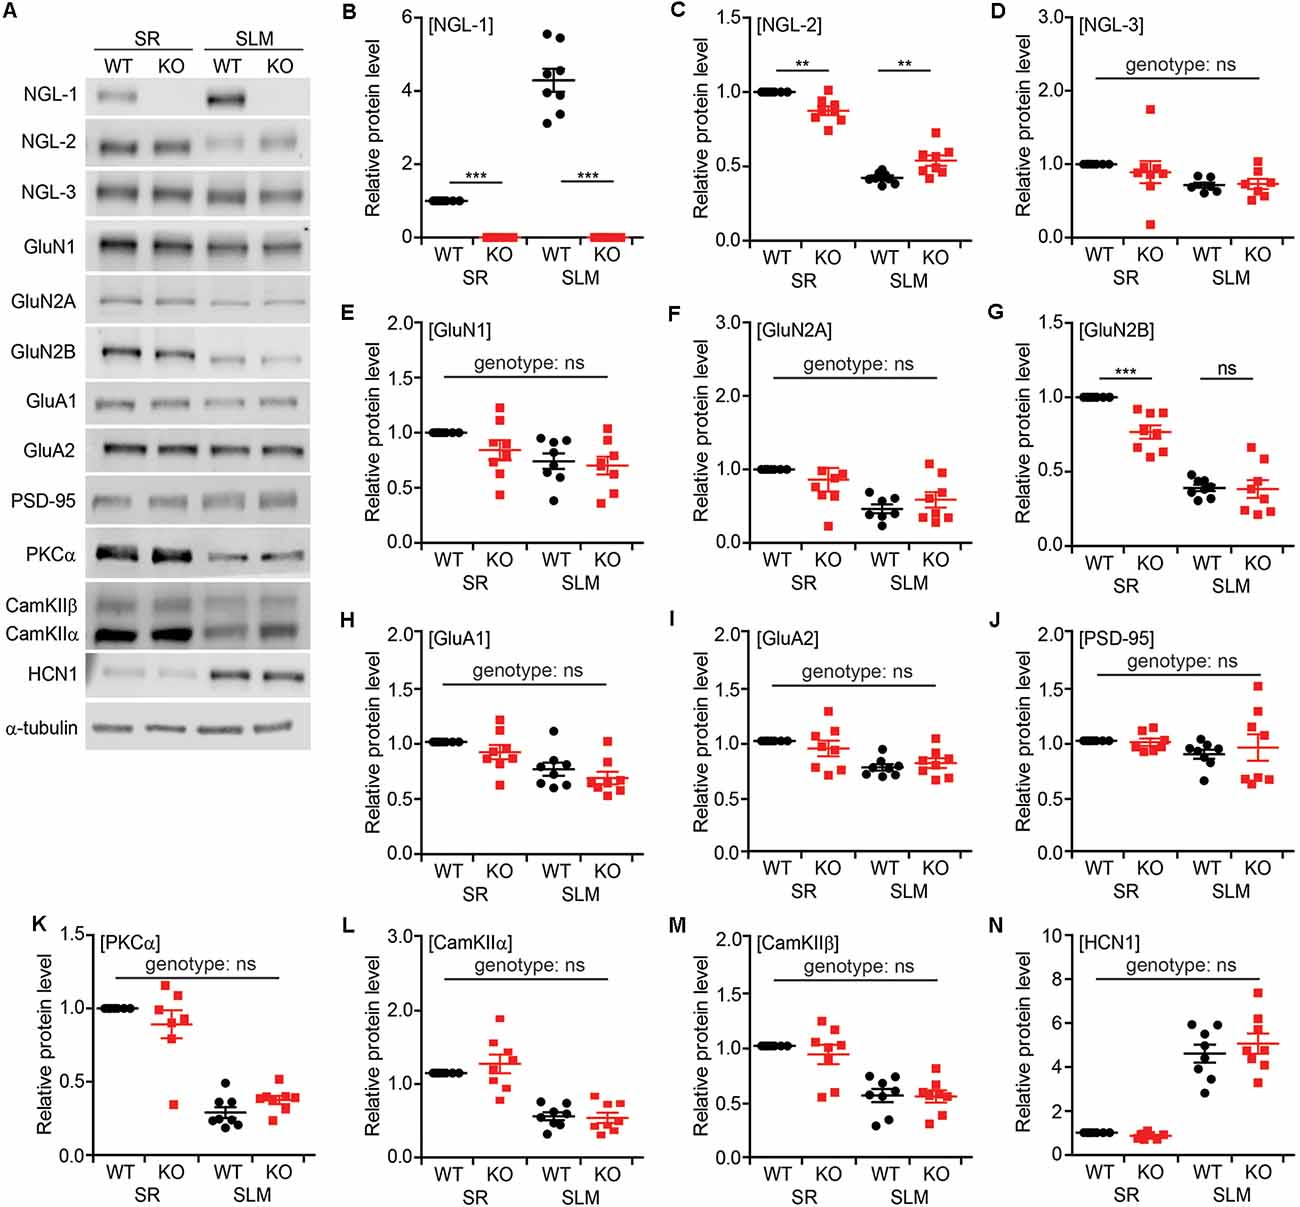 Frontiers | NGL-1/LRRC4C Deletion Moderately Suppresses Hippocampal